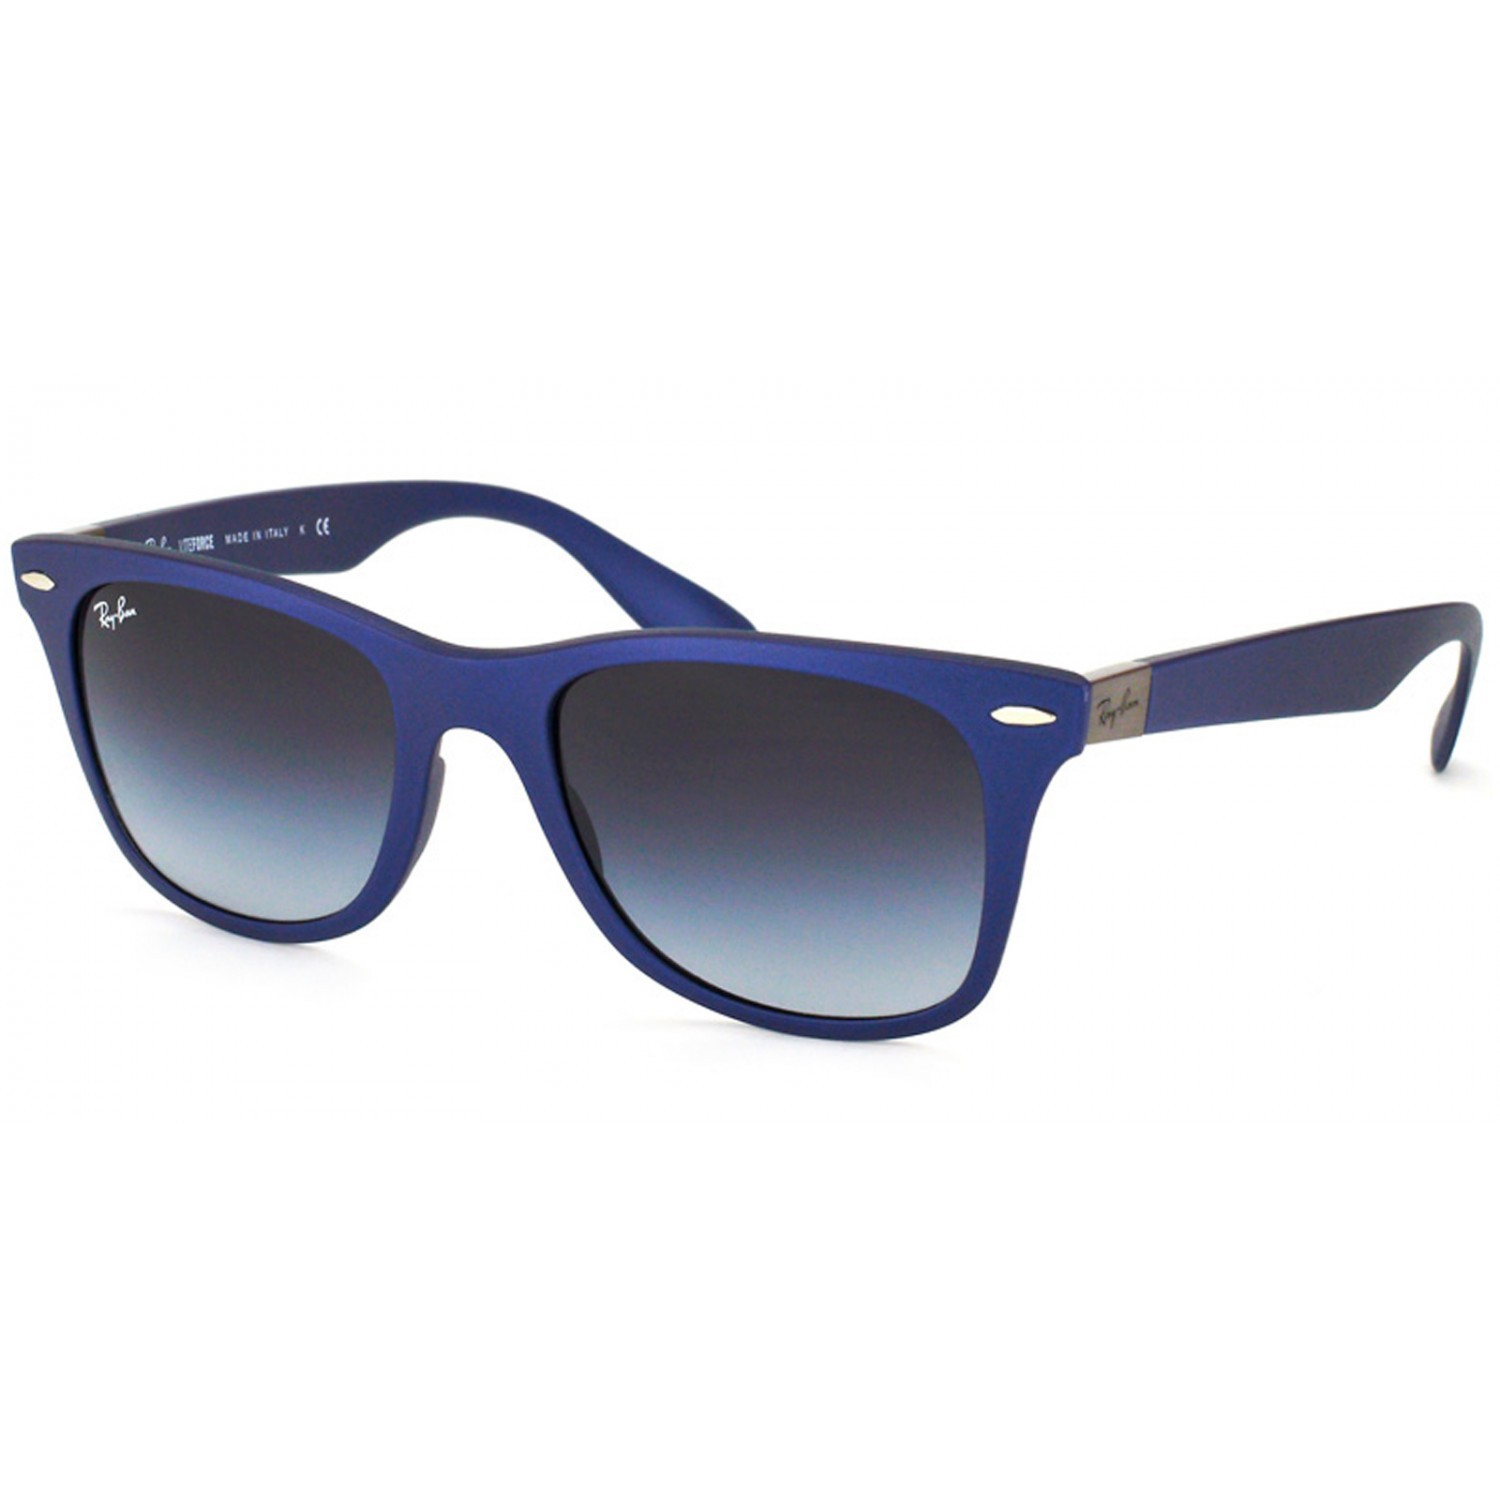 32a1e6c312 Γυαλιά Hλίου Ray-Ban WAYFARER LITEFORCE RB 4195 6015 8G